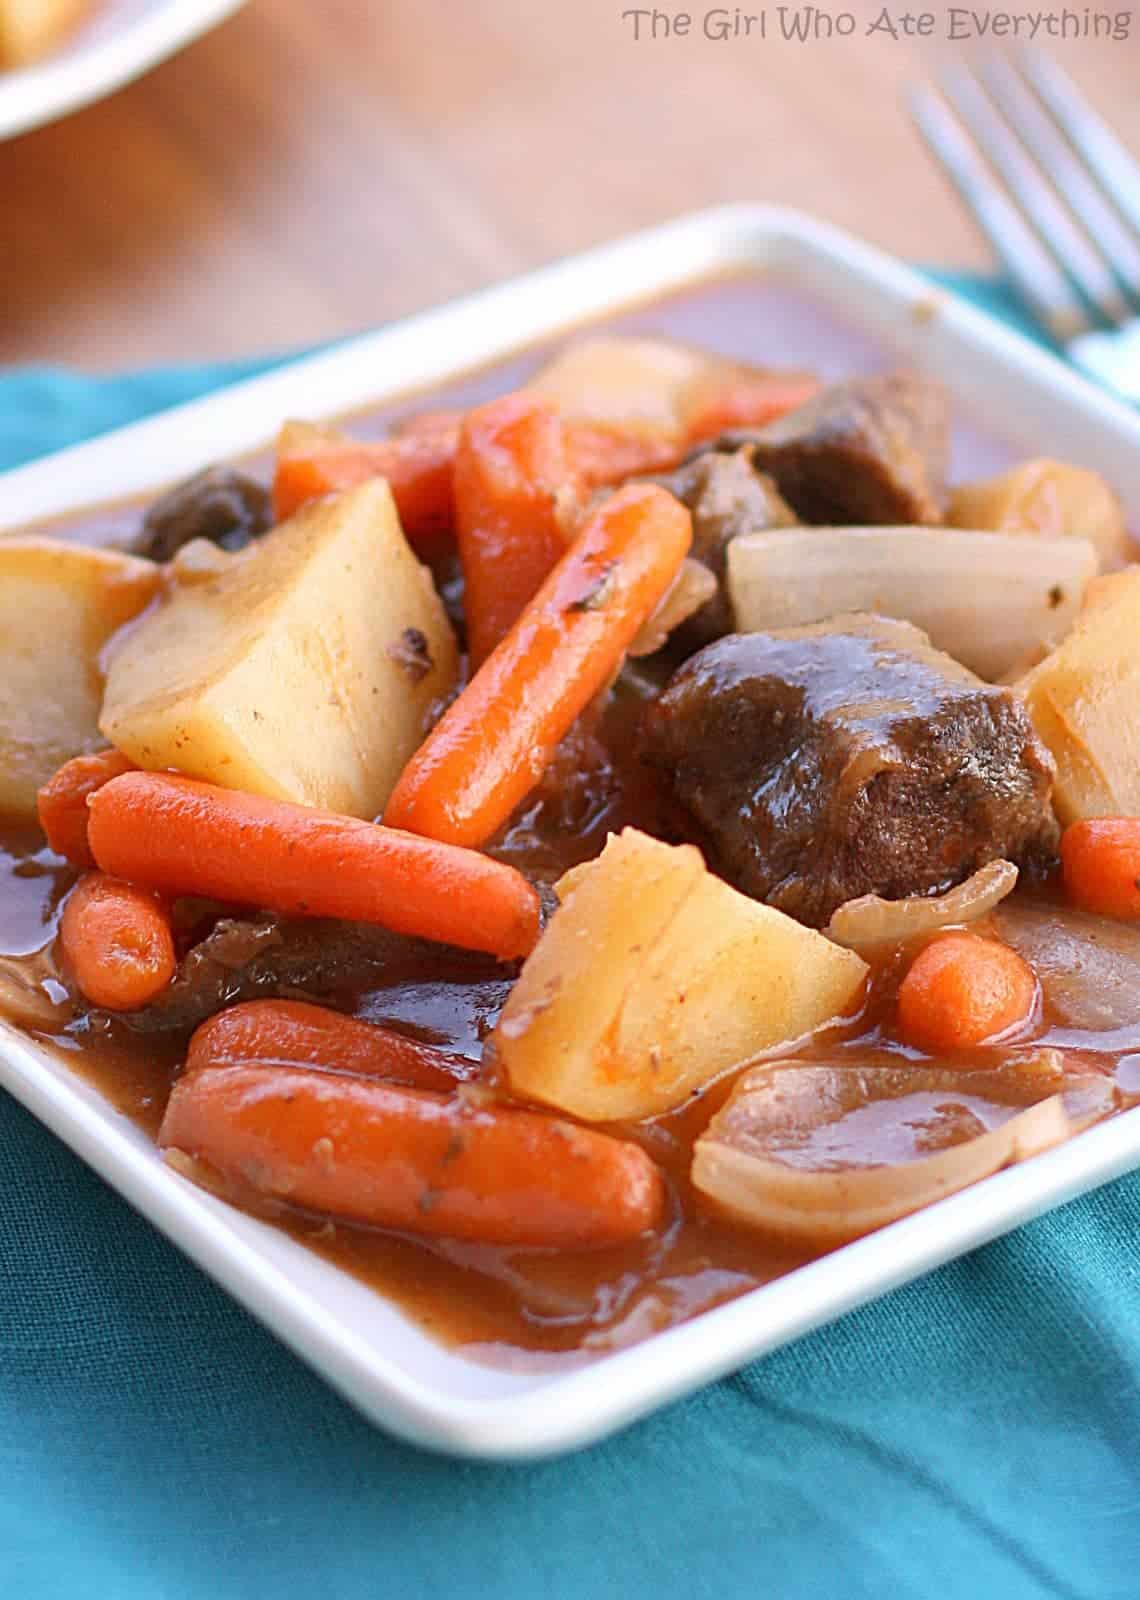 Oven Baked Stew - an old favorite we love! the-girl-who-ate-everything.com